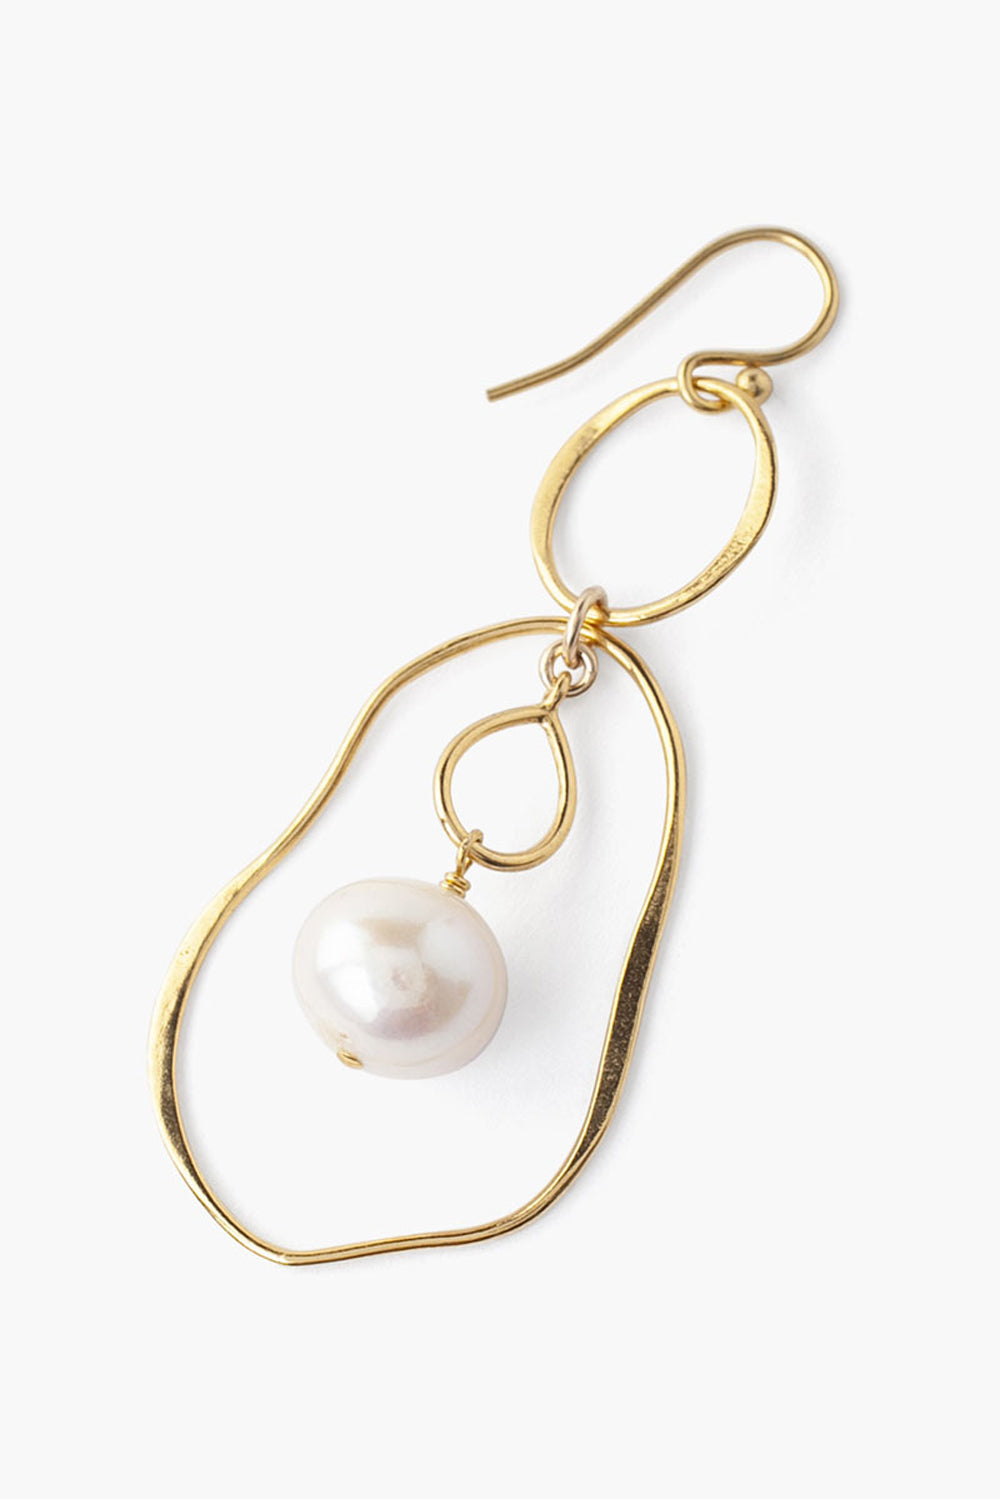 Tiered White Pearl and Gold Matisse Earrings